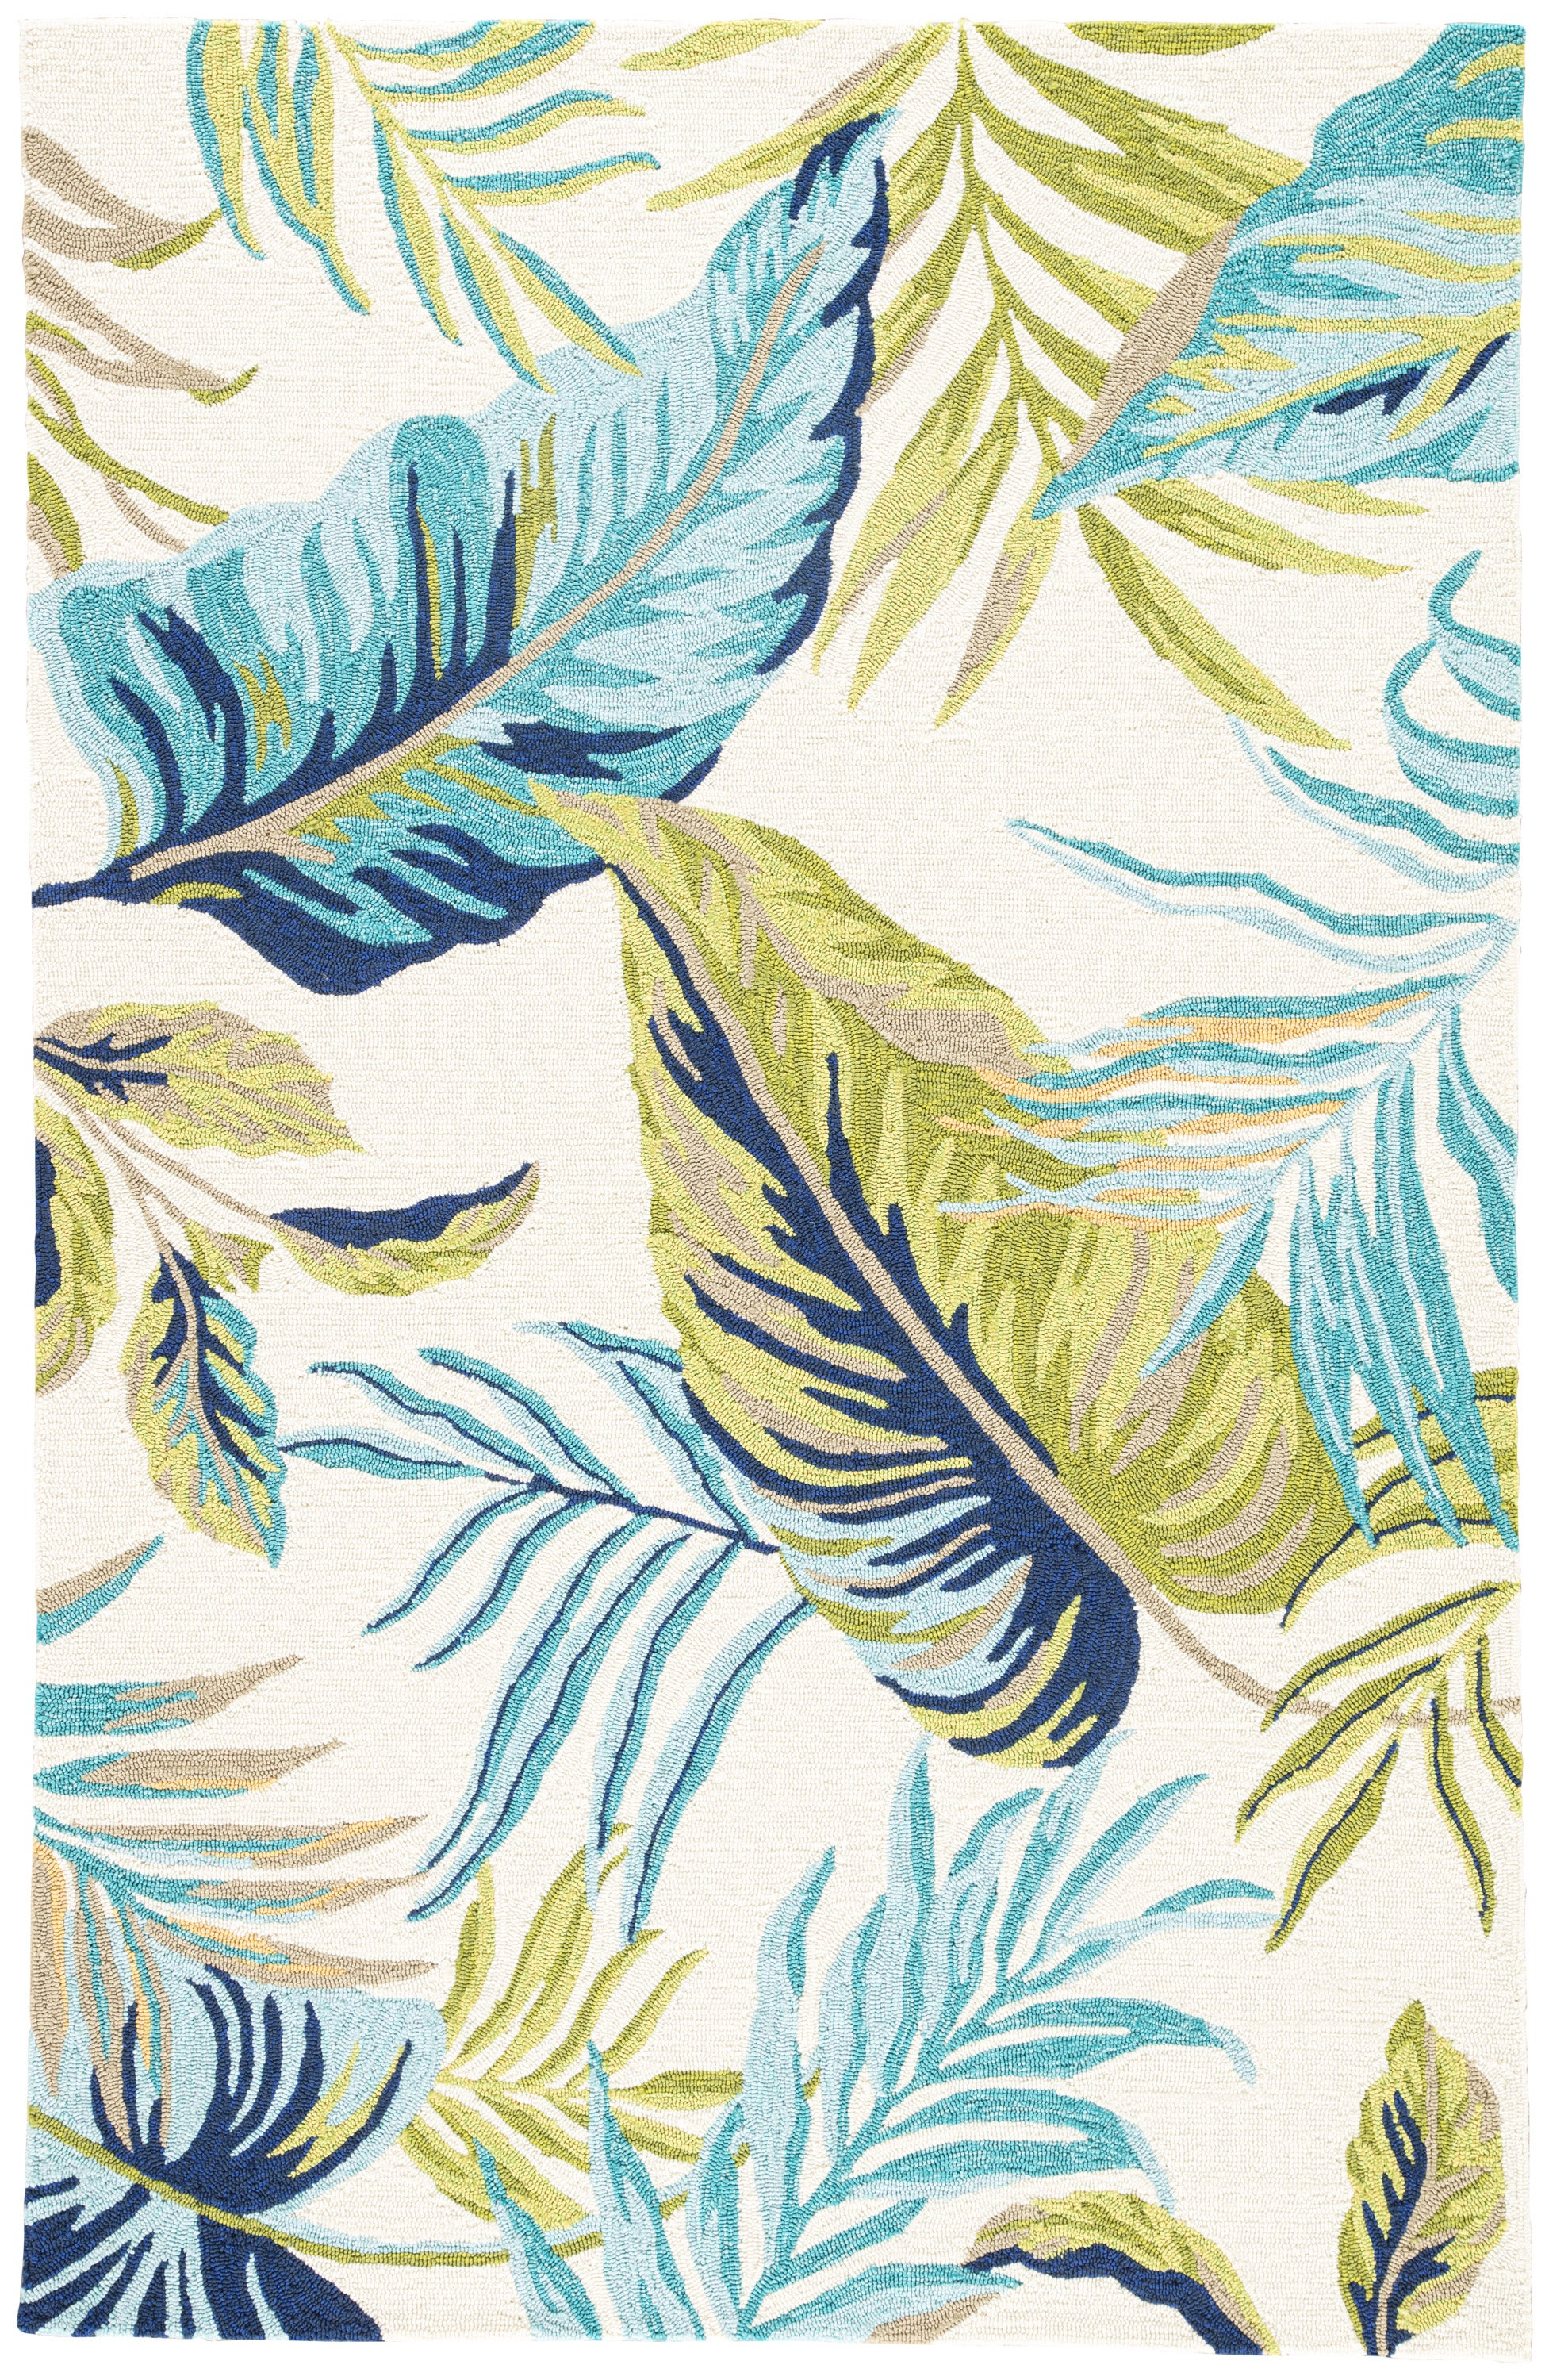 Rectangle Blue Floral Hand Hooked Synthetics Casual recommended for Bedroom, Bathroom, Outdoor, Dining Room, Office, Hallway, Living Room